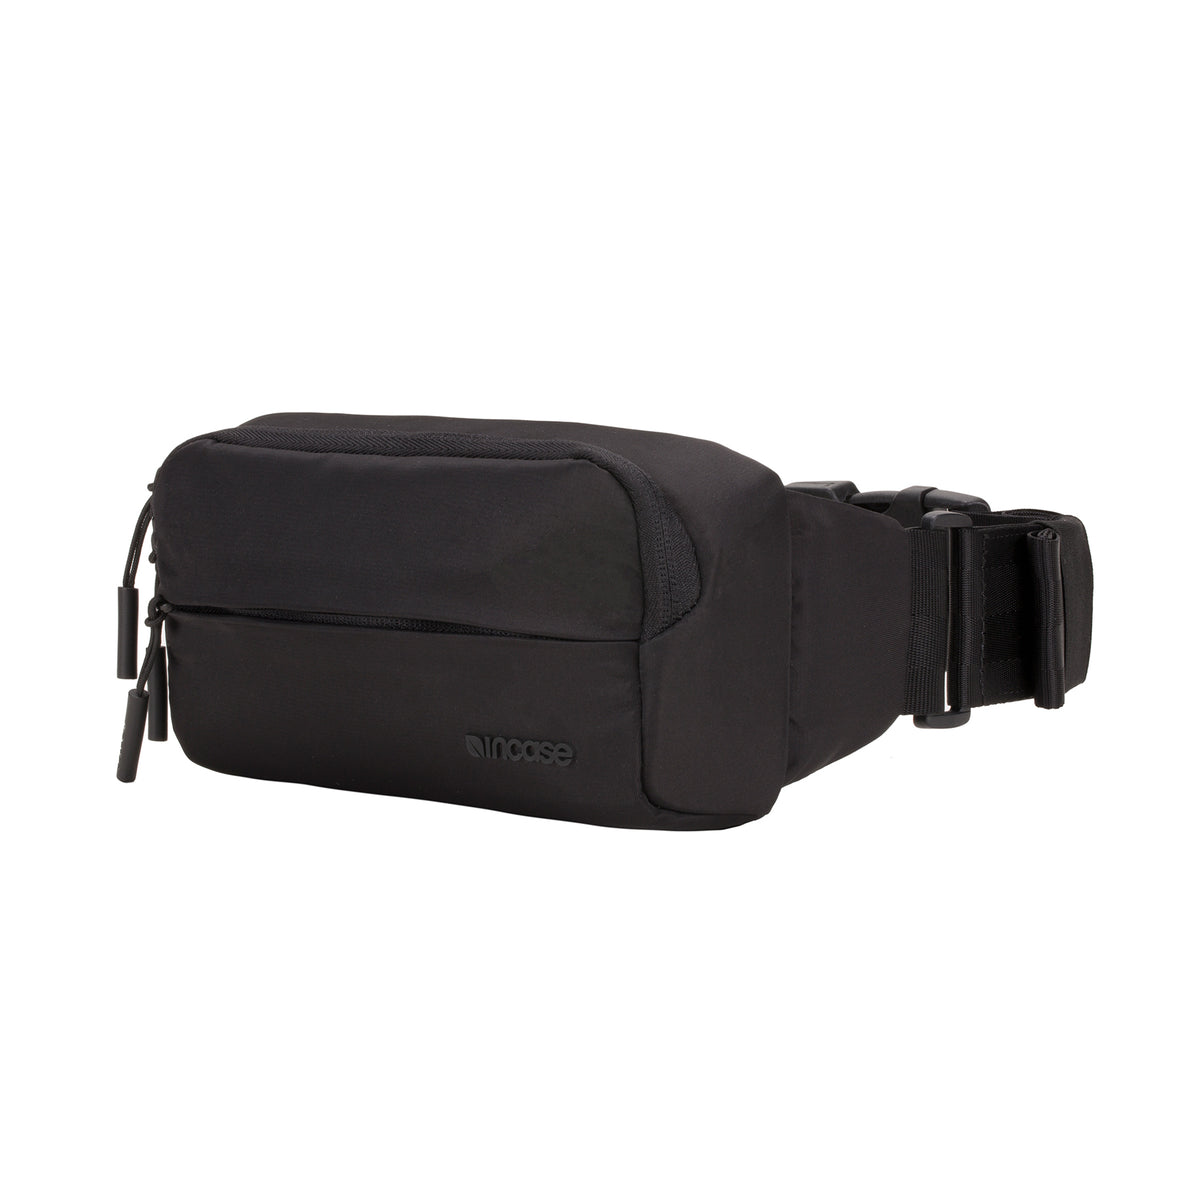 Incase: Side Bag - Black